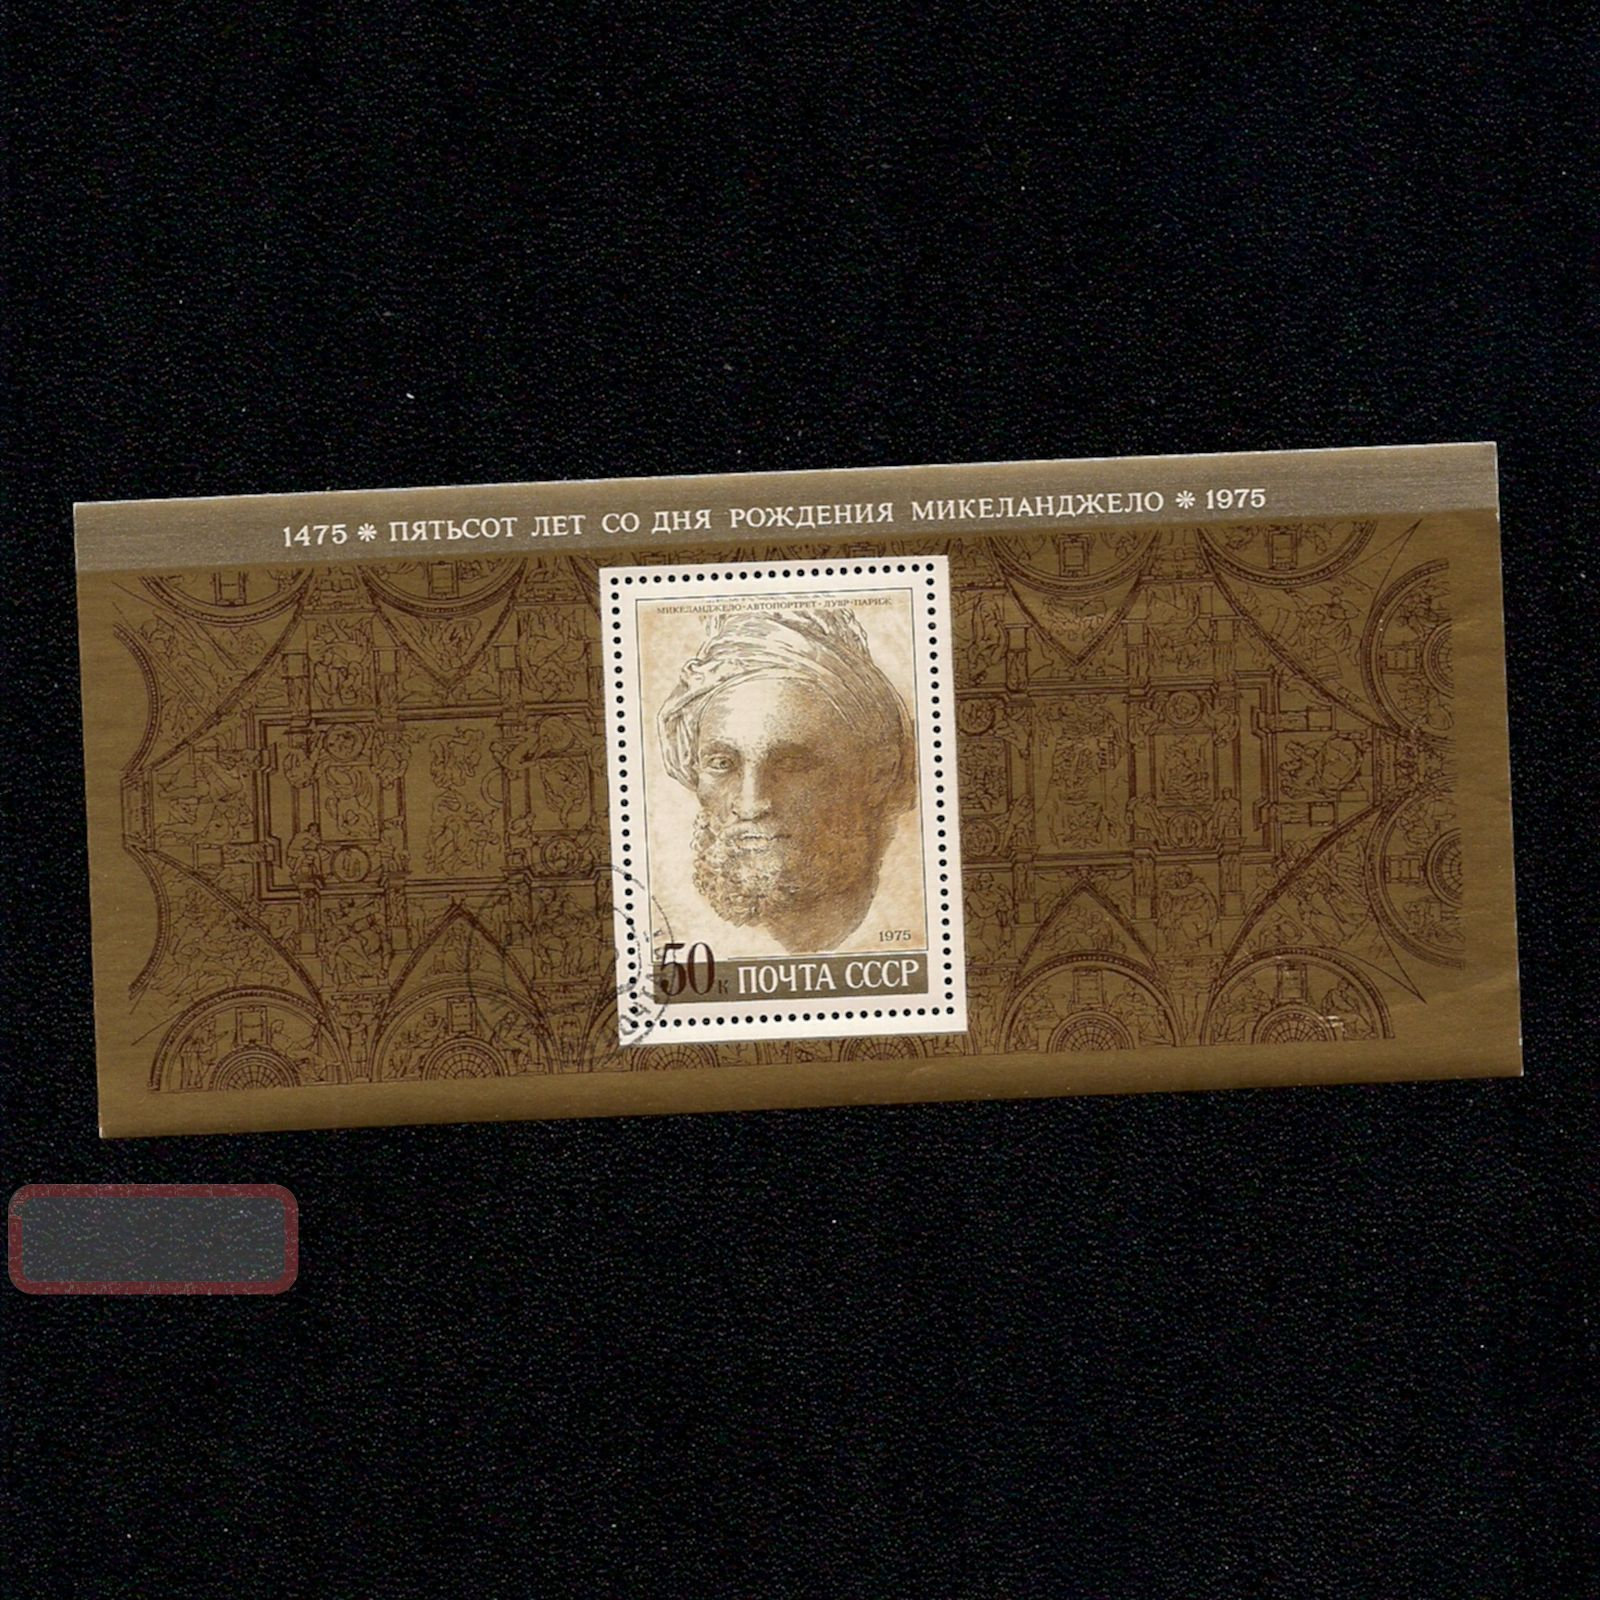 Russia: Small Michelangelo Souvenir Sheet Topical Stamps photo